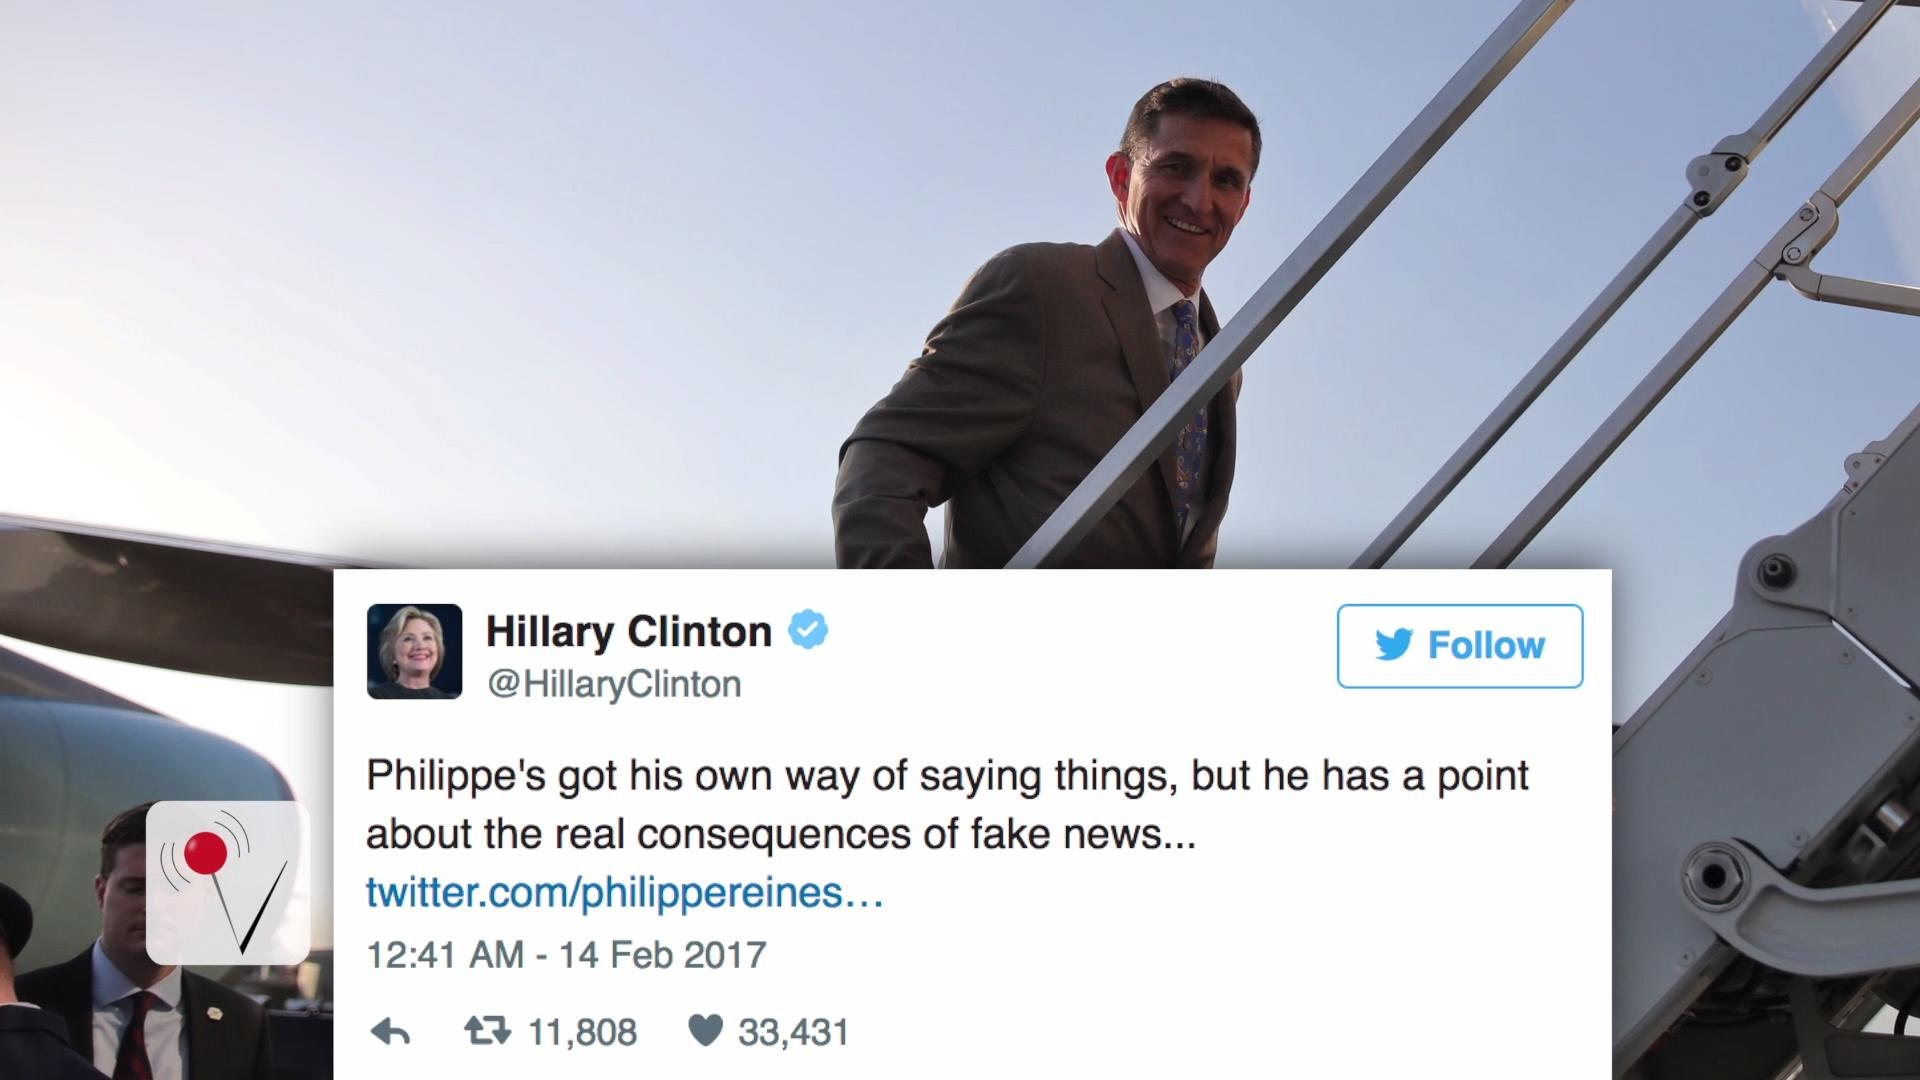 Hillary Clinton Trolls Trump Again on Twitter Over Michael Flynn's Resignation